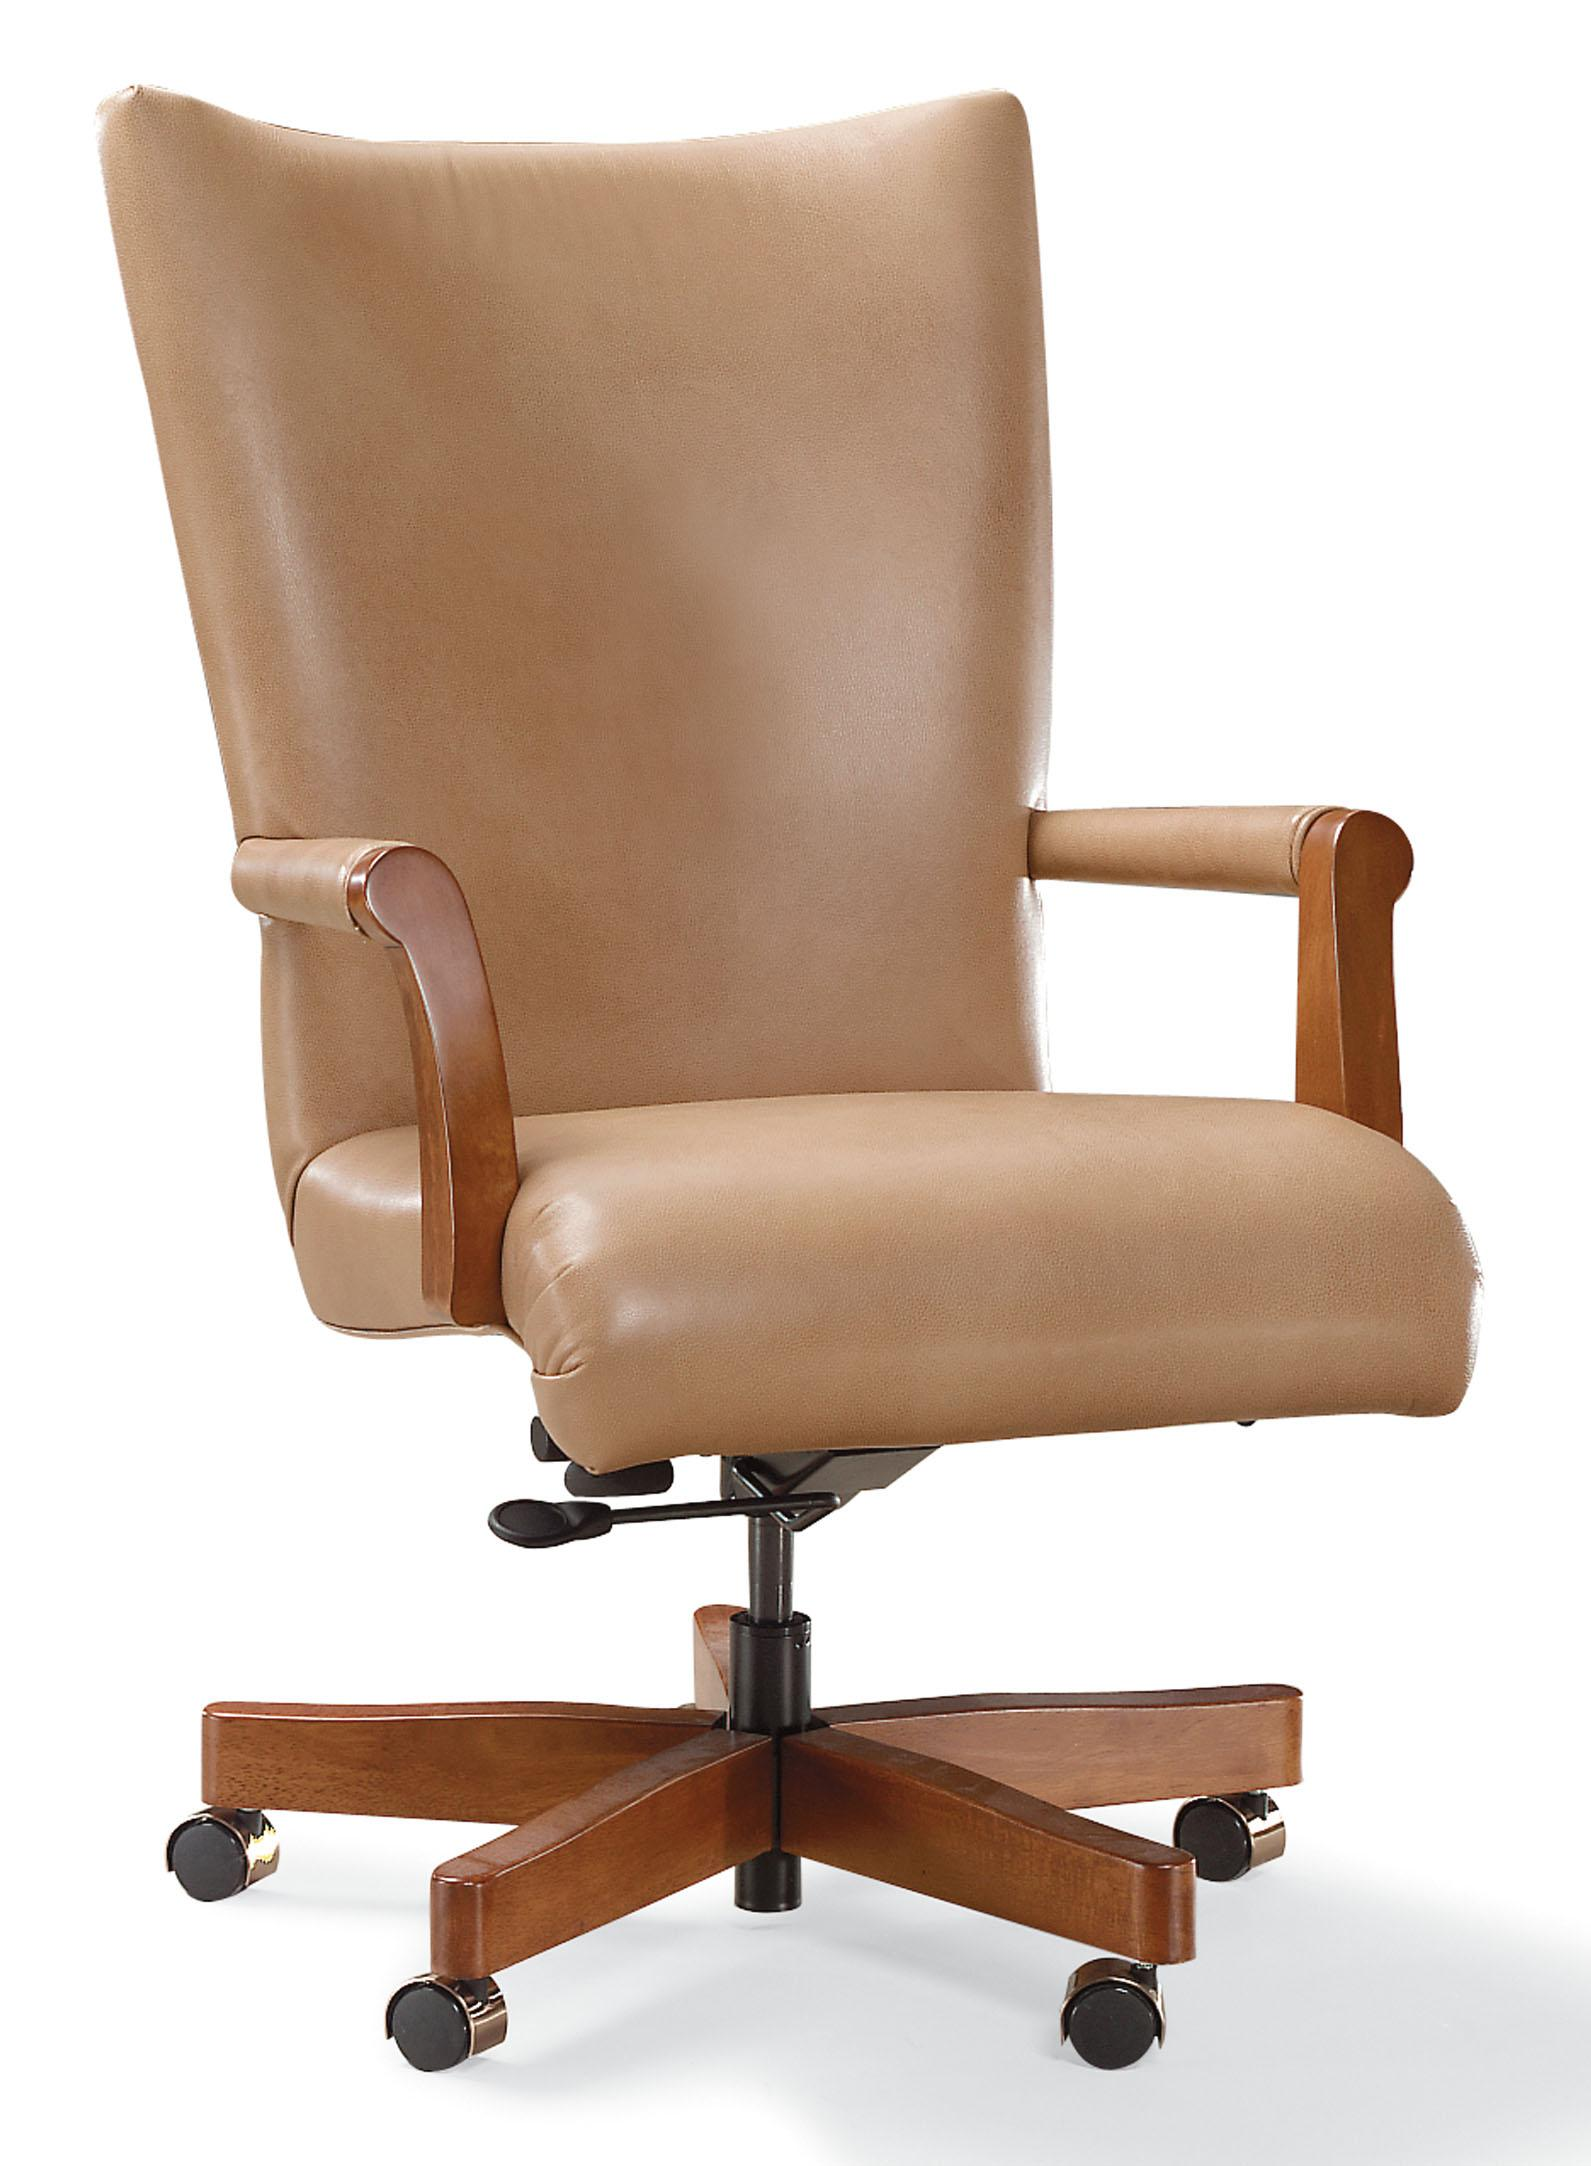 Fairfield Office Furnishings Executive Swivel Chair - Item Number: 1061-35